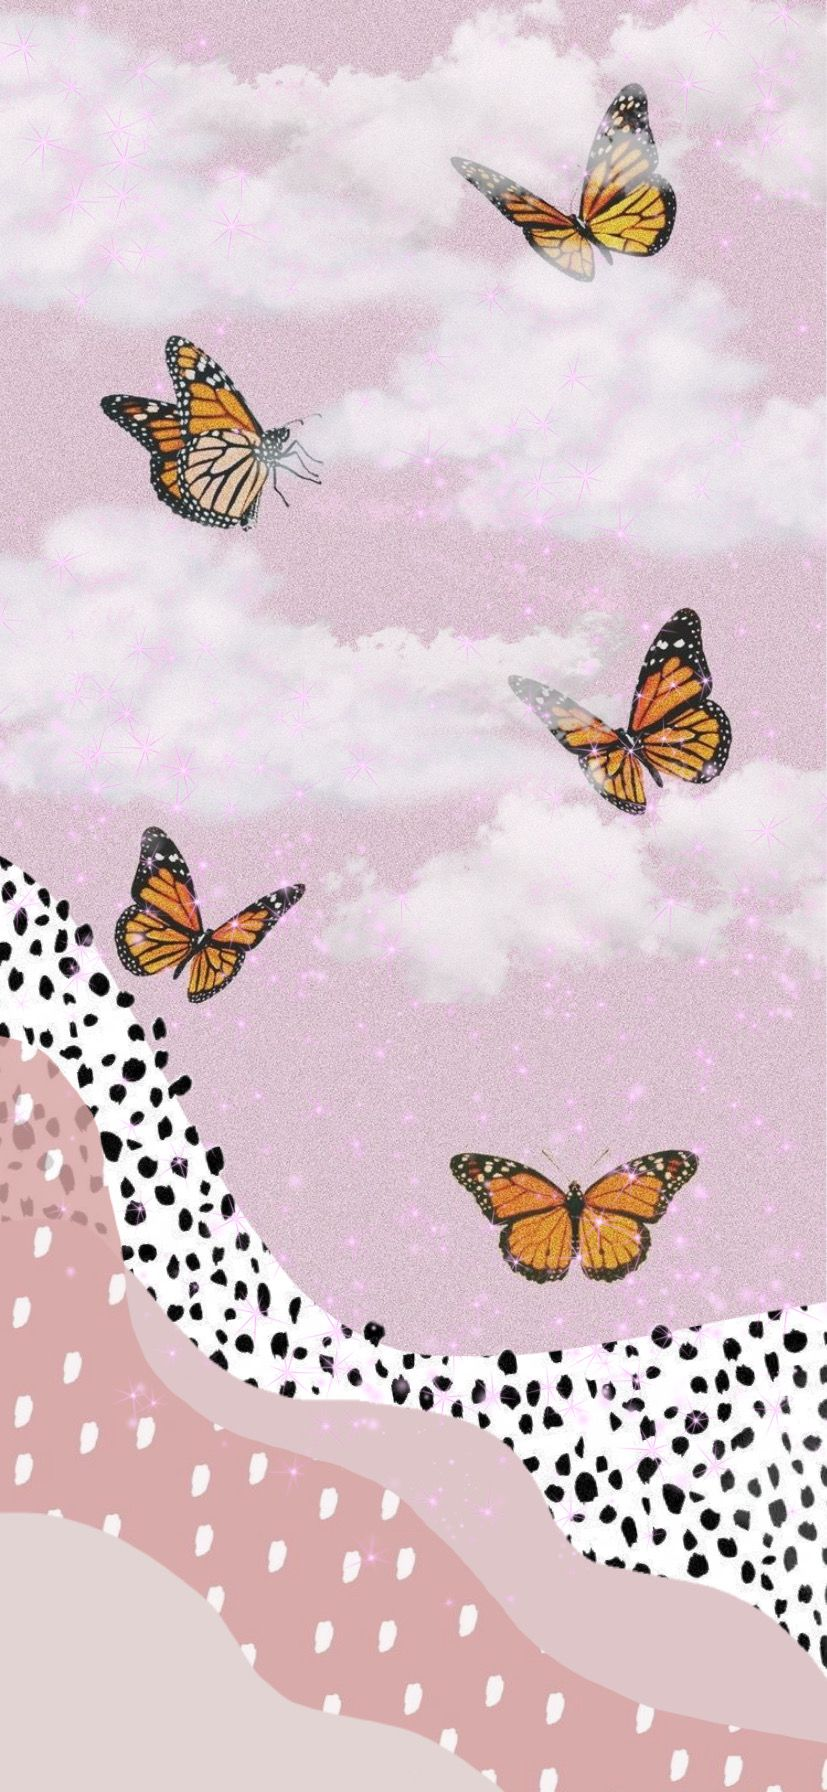 Wallpaper In 2020 Butterfly Wallpaper Cute Patterns Wallpaper Pink Glitter Wallpaper